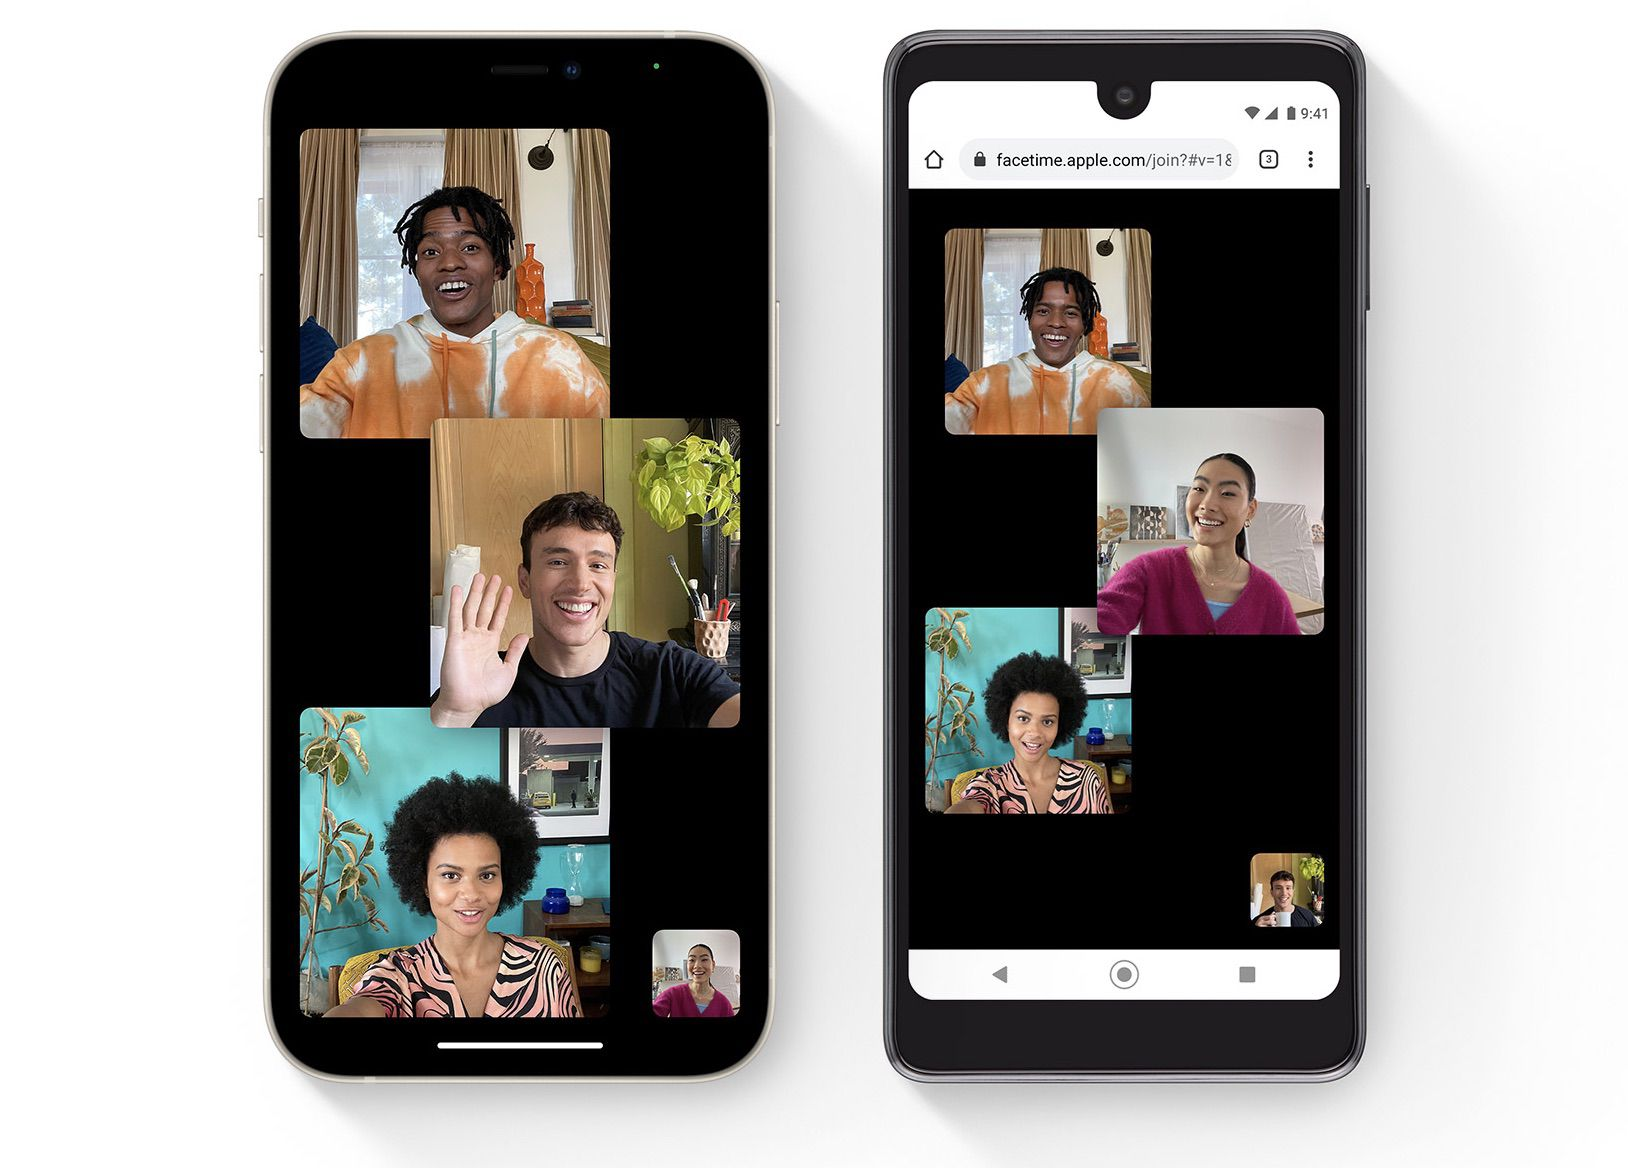 iOS 15: How to Invite Android Users to a FaceTime Call